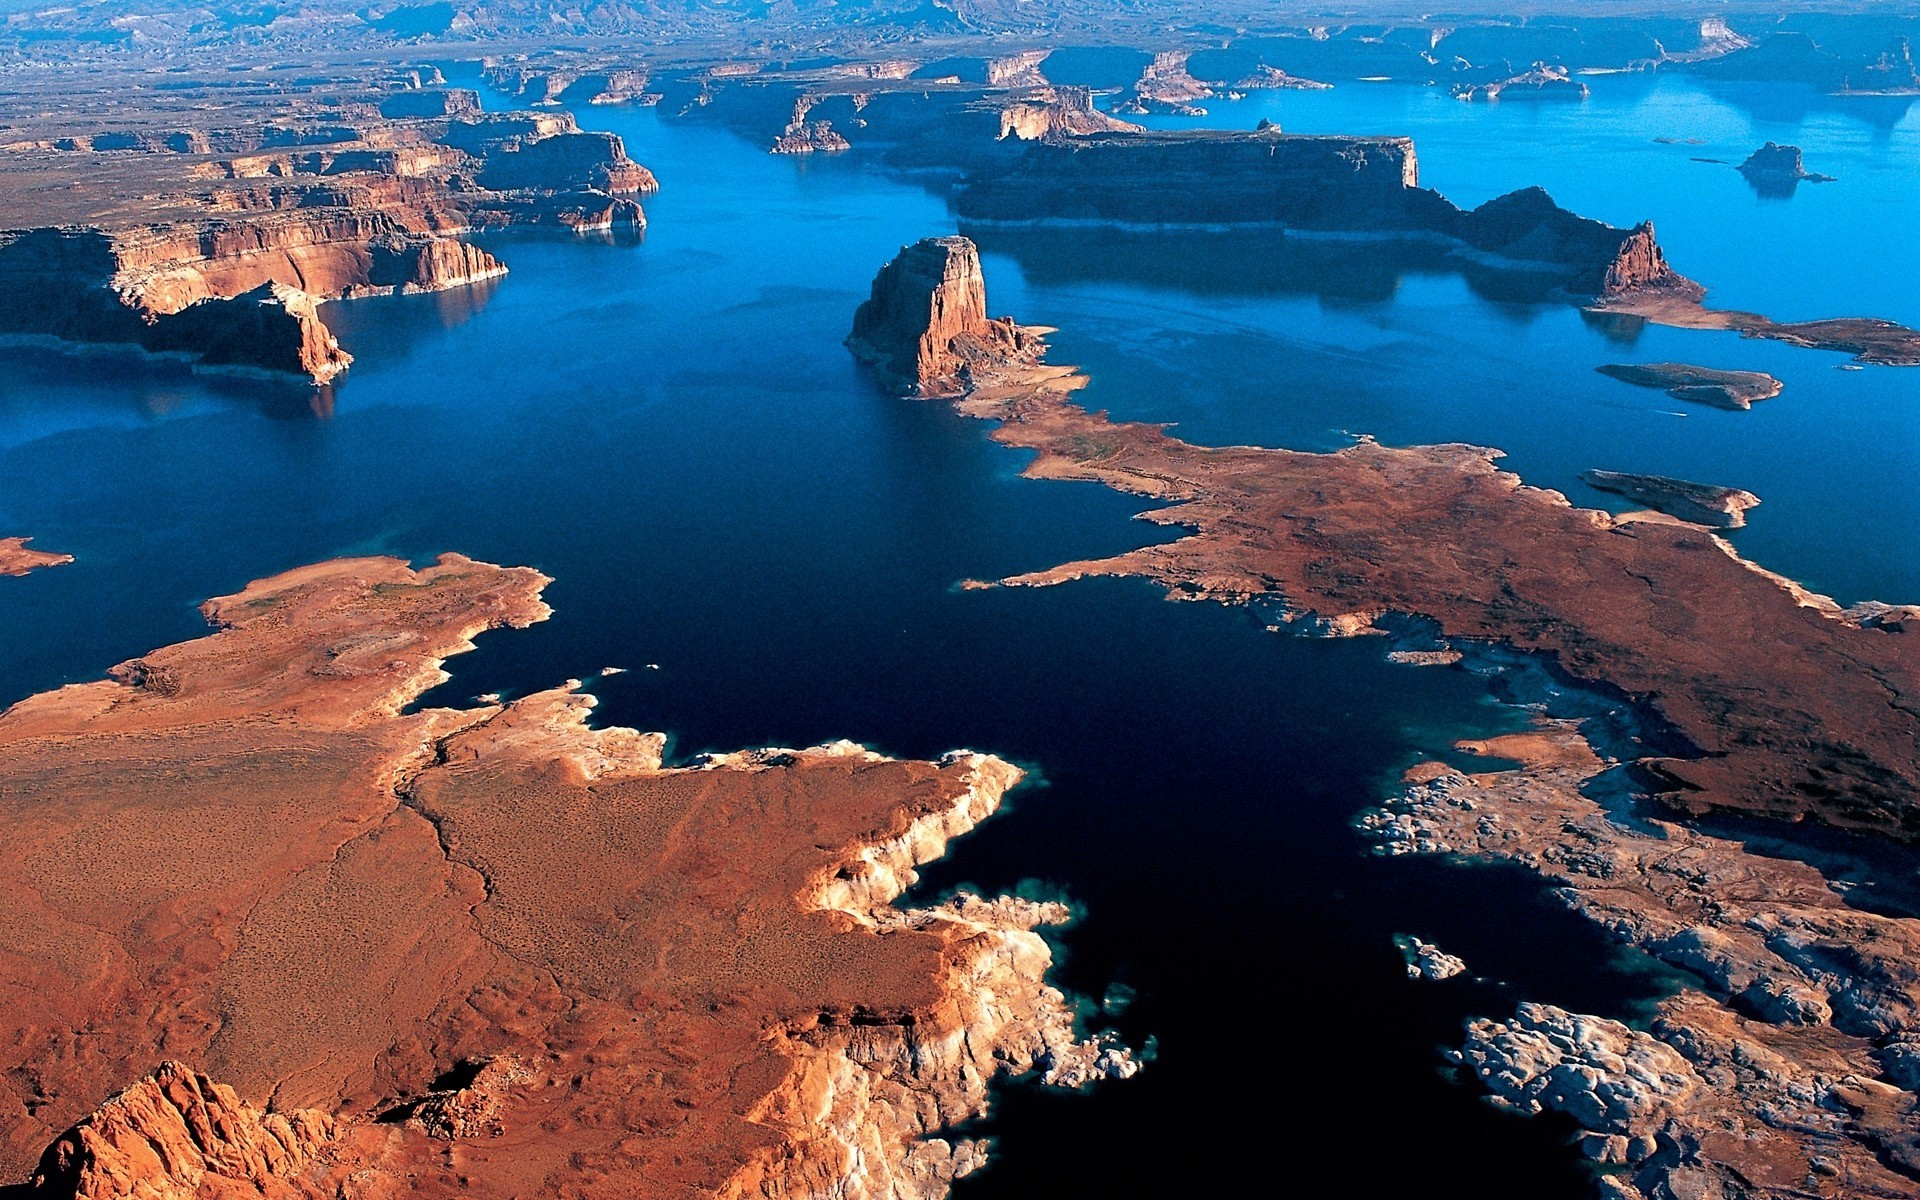 Arizona, Aerial View, Lake, Desert, Cliff, Sunset, Water, Nature, Landscape  Wallpapers HD / Desktop and Mobile Backgrounds